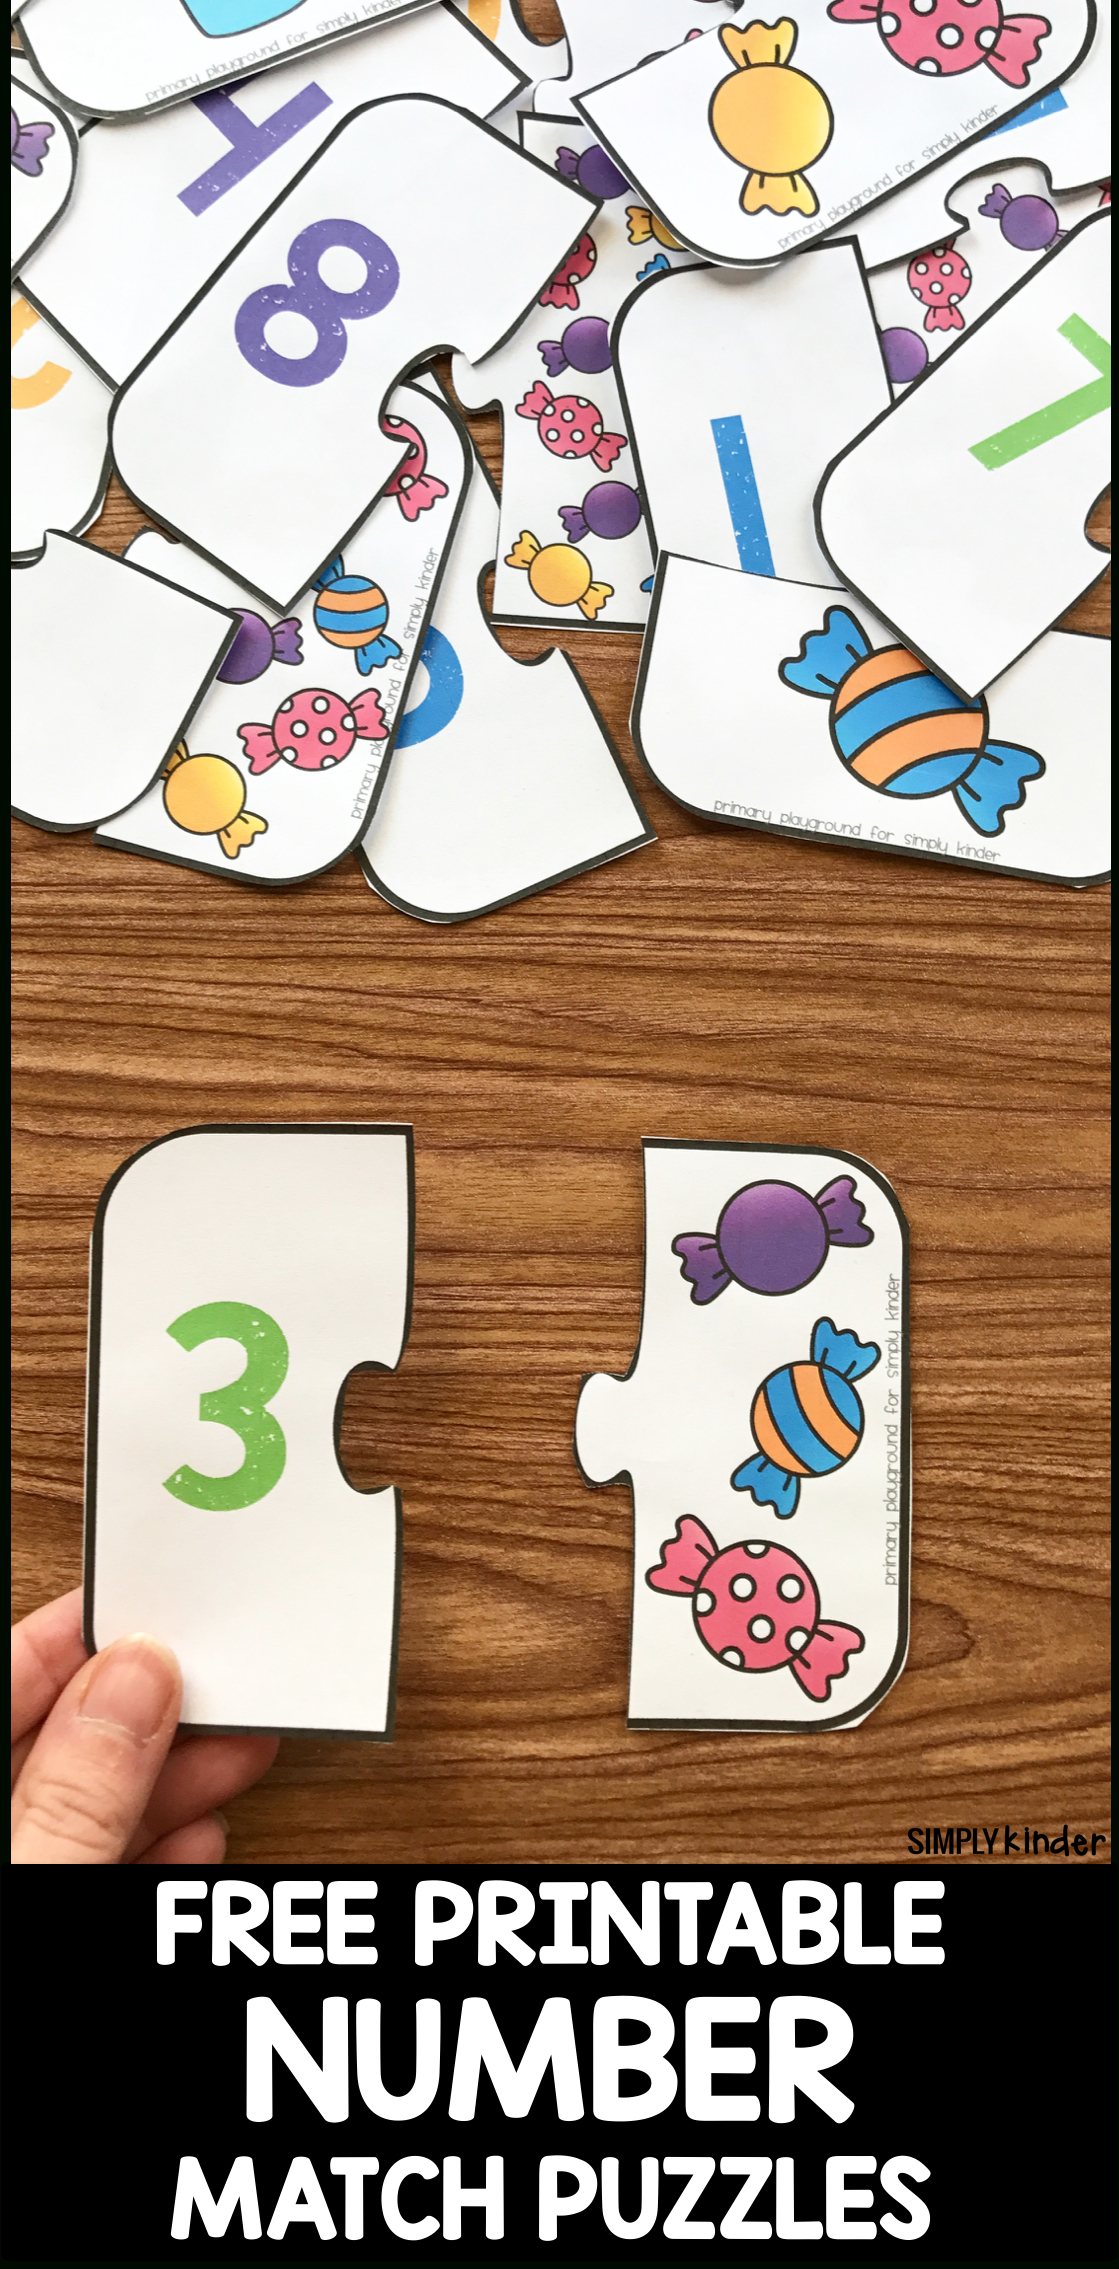 Free Printable Number Match Puzzles | Numbers | Simply Kinder, Free - Printable Number Puzzle